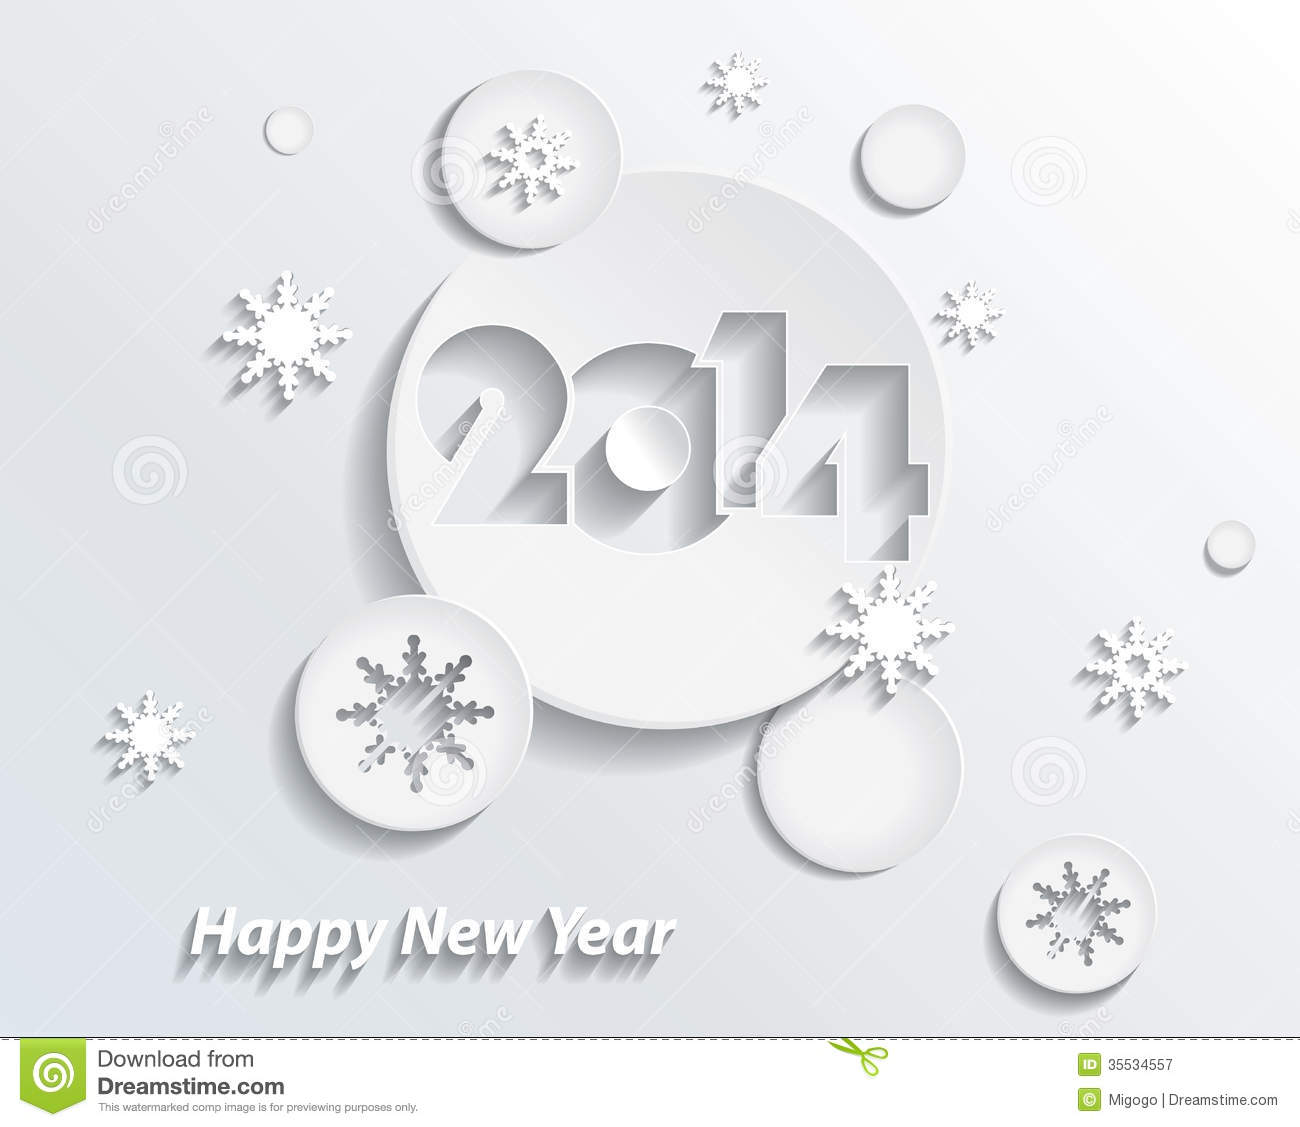 Happy new year 2014 creative greeting card stock vector download comp m4hsunfo